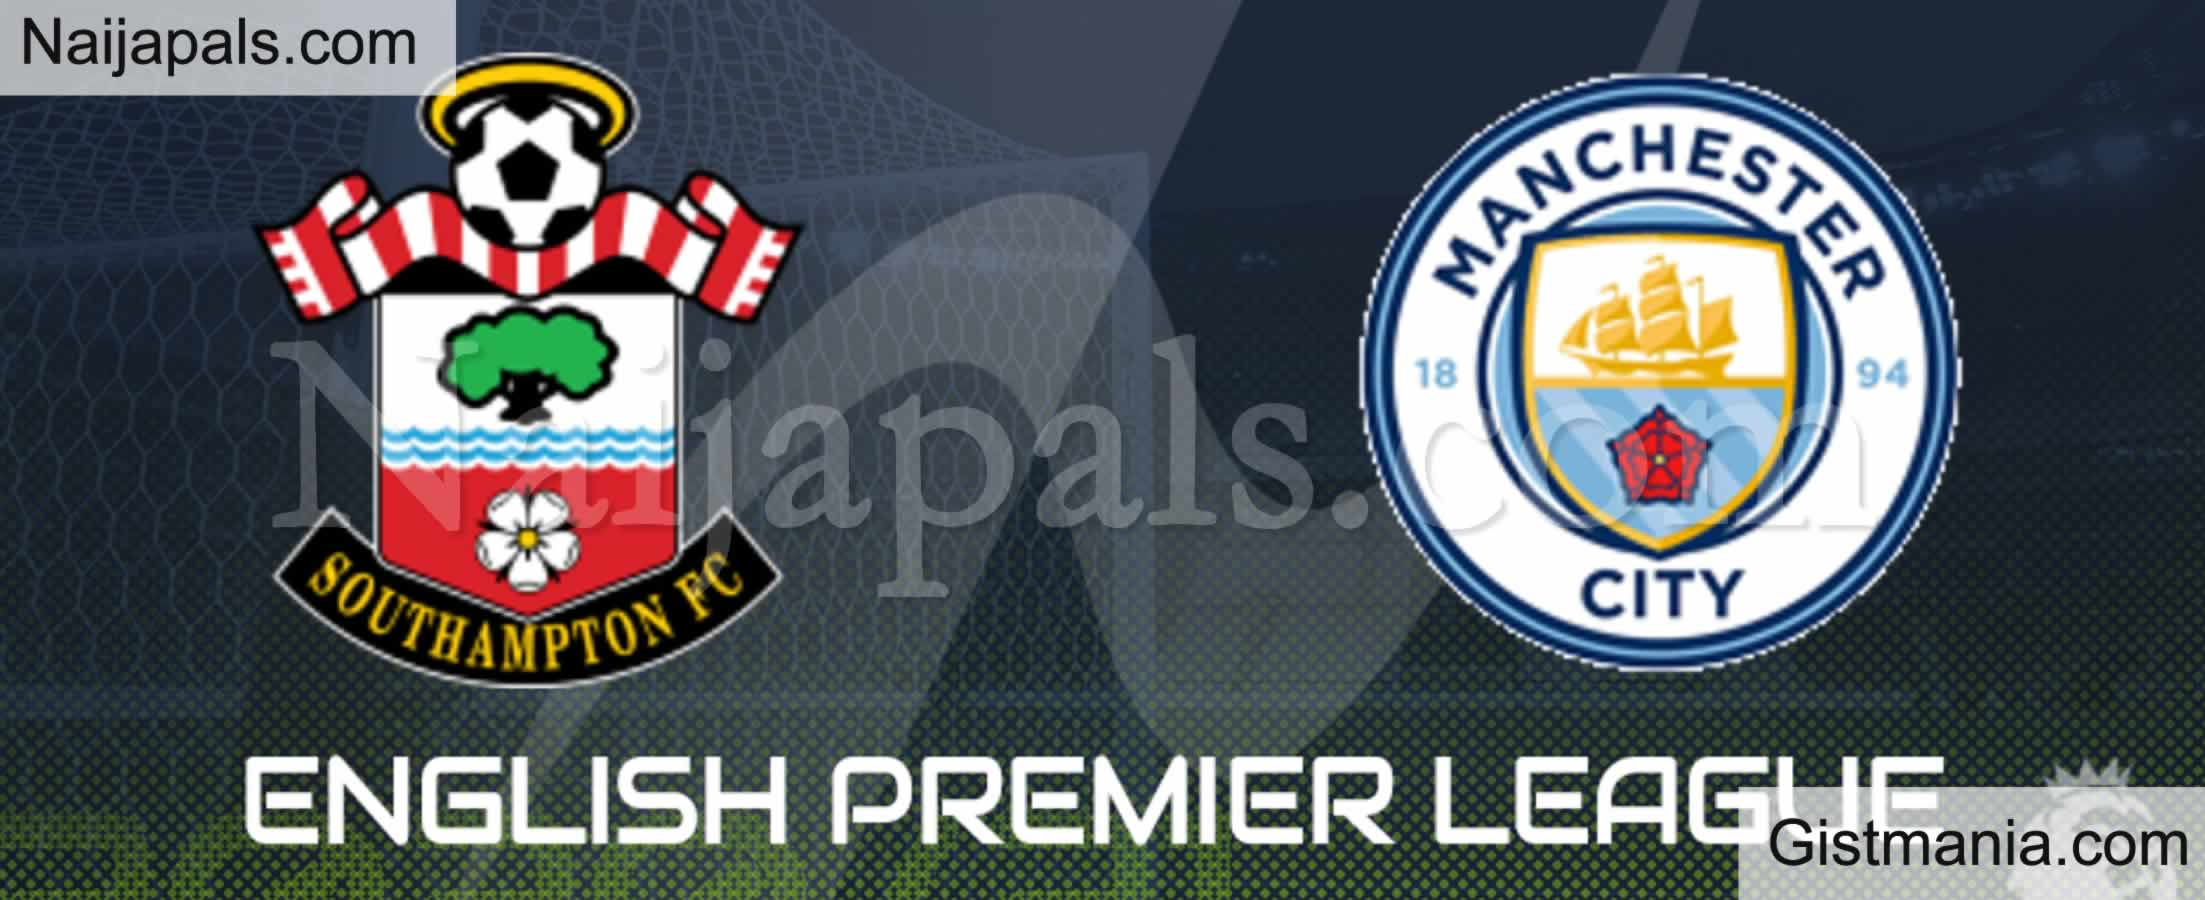 <img alt='.' class='lazyload' data-src='https://img.gistmania.com/emot/soccer.gif' /> <b>Southampton v Man City : English Premier League Match, Team News, Goal Scorers and Stats</b>